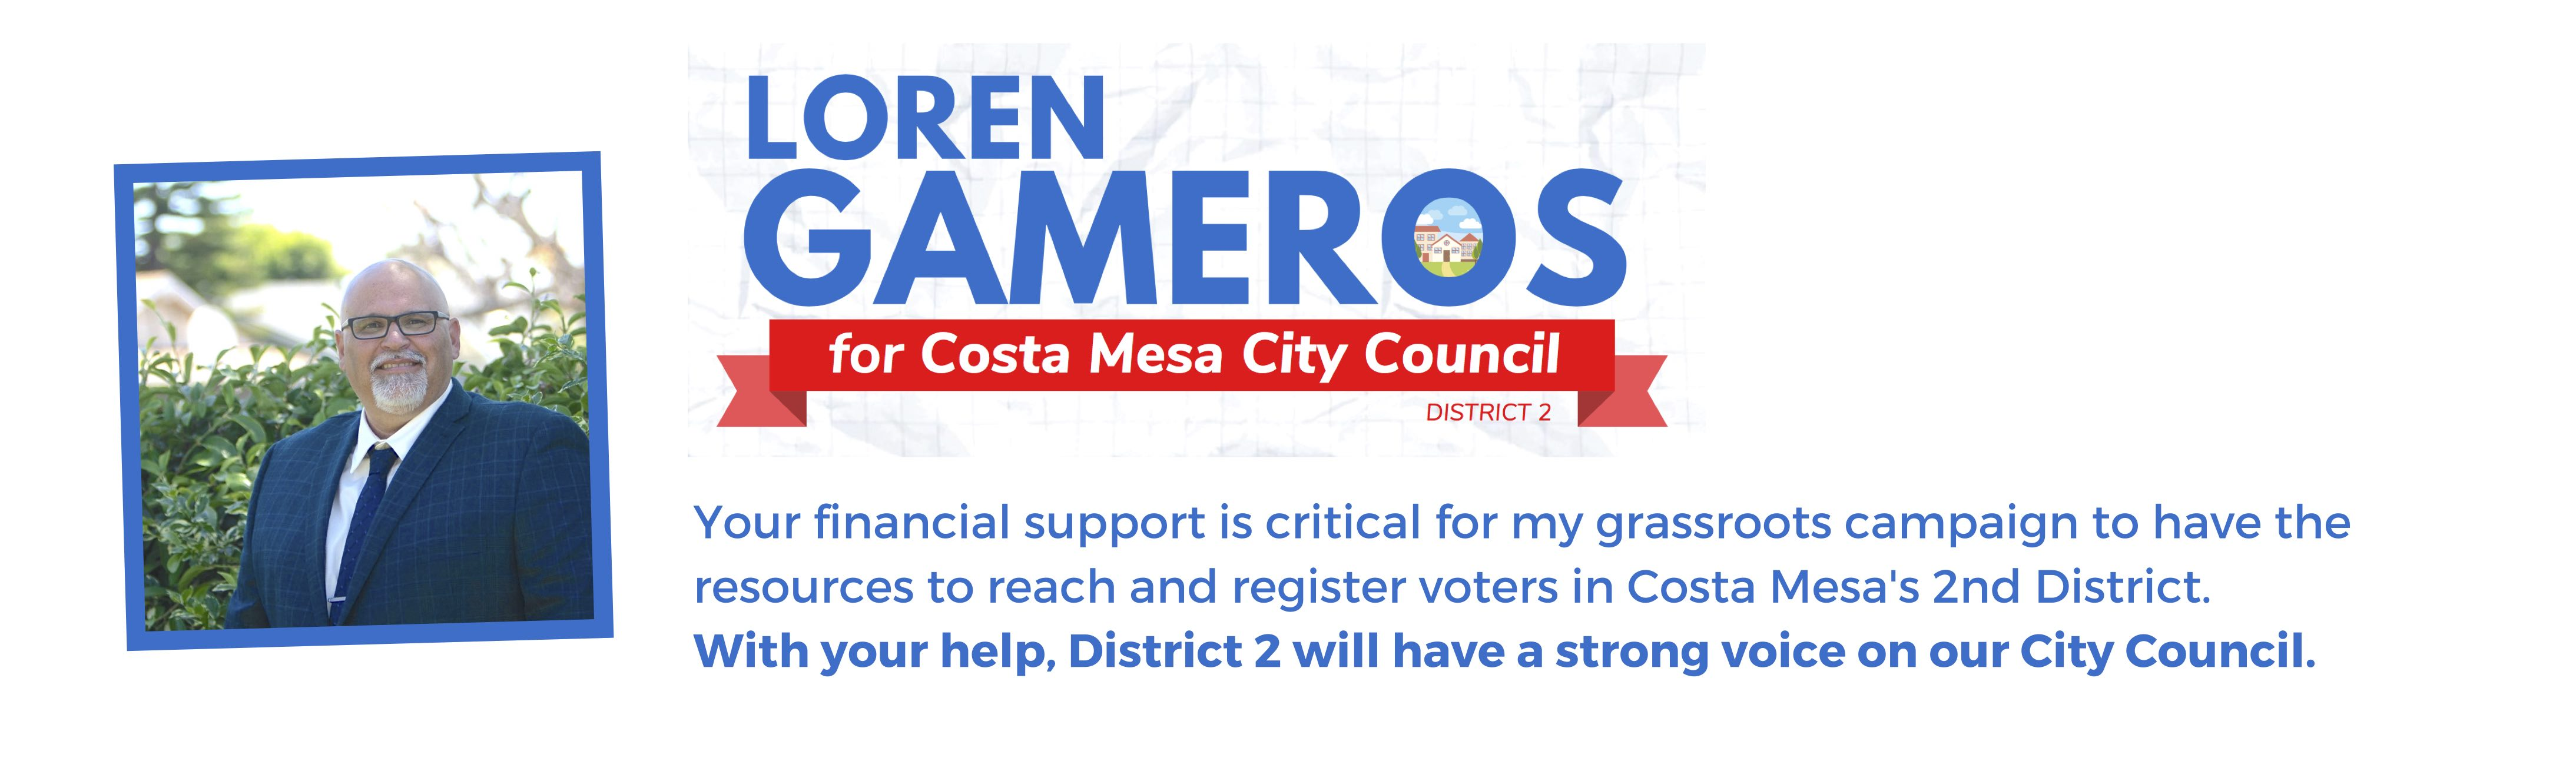 Gameros for Costa Mesa District 2 in 2020